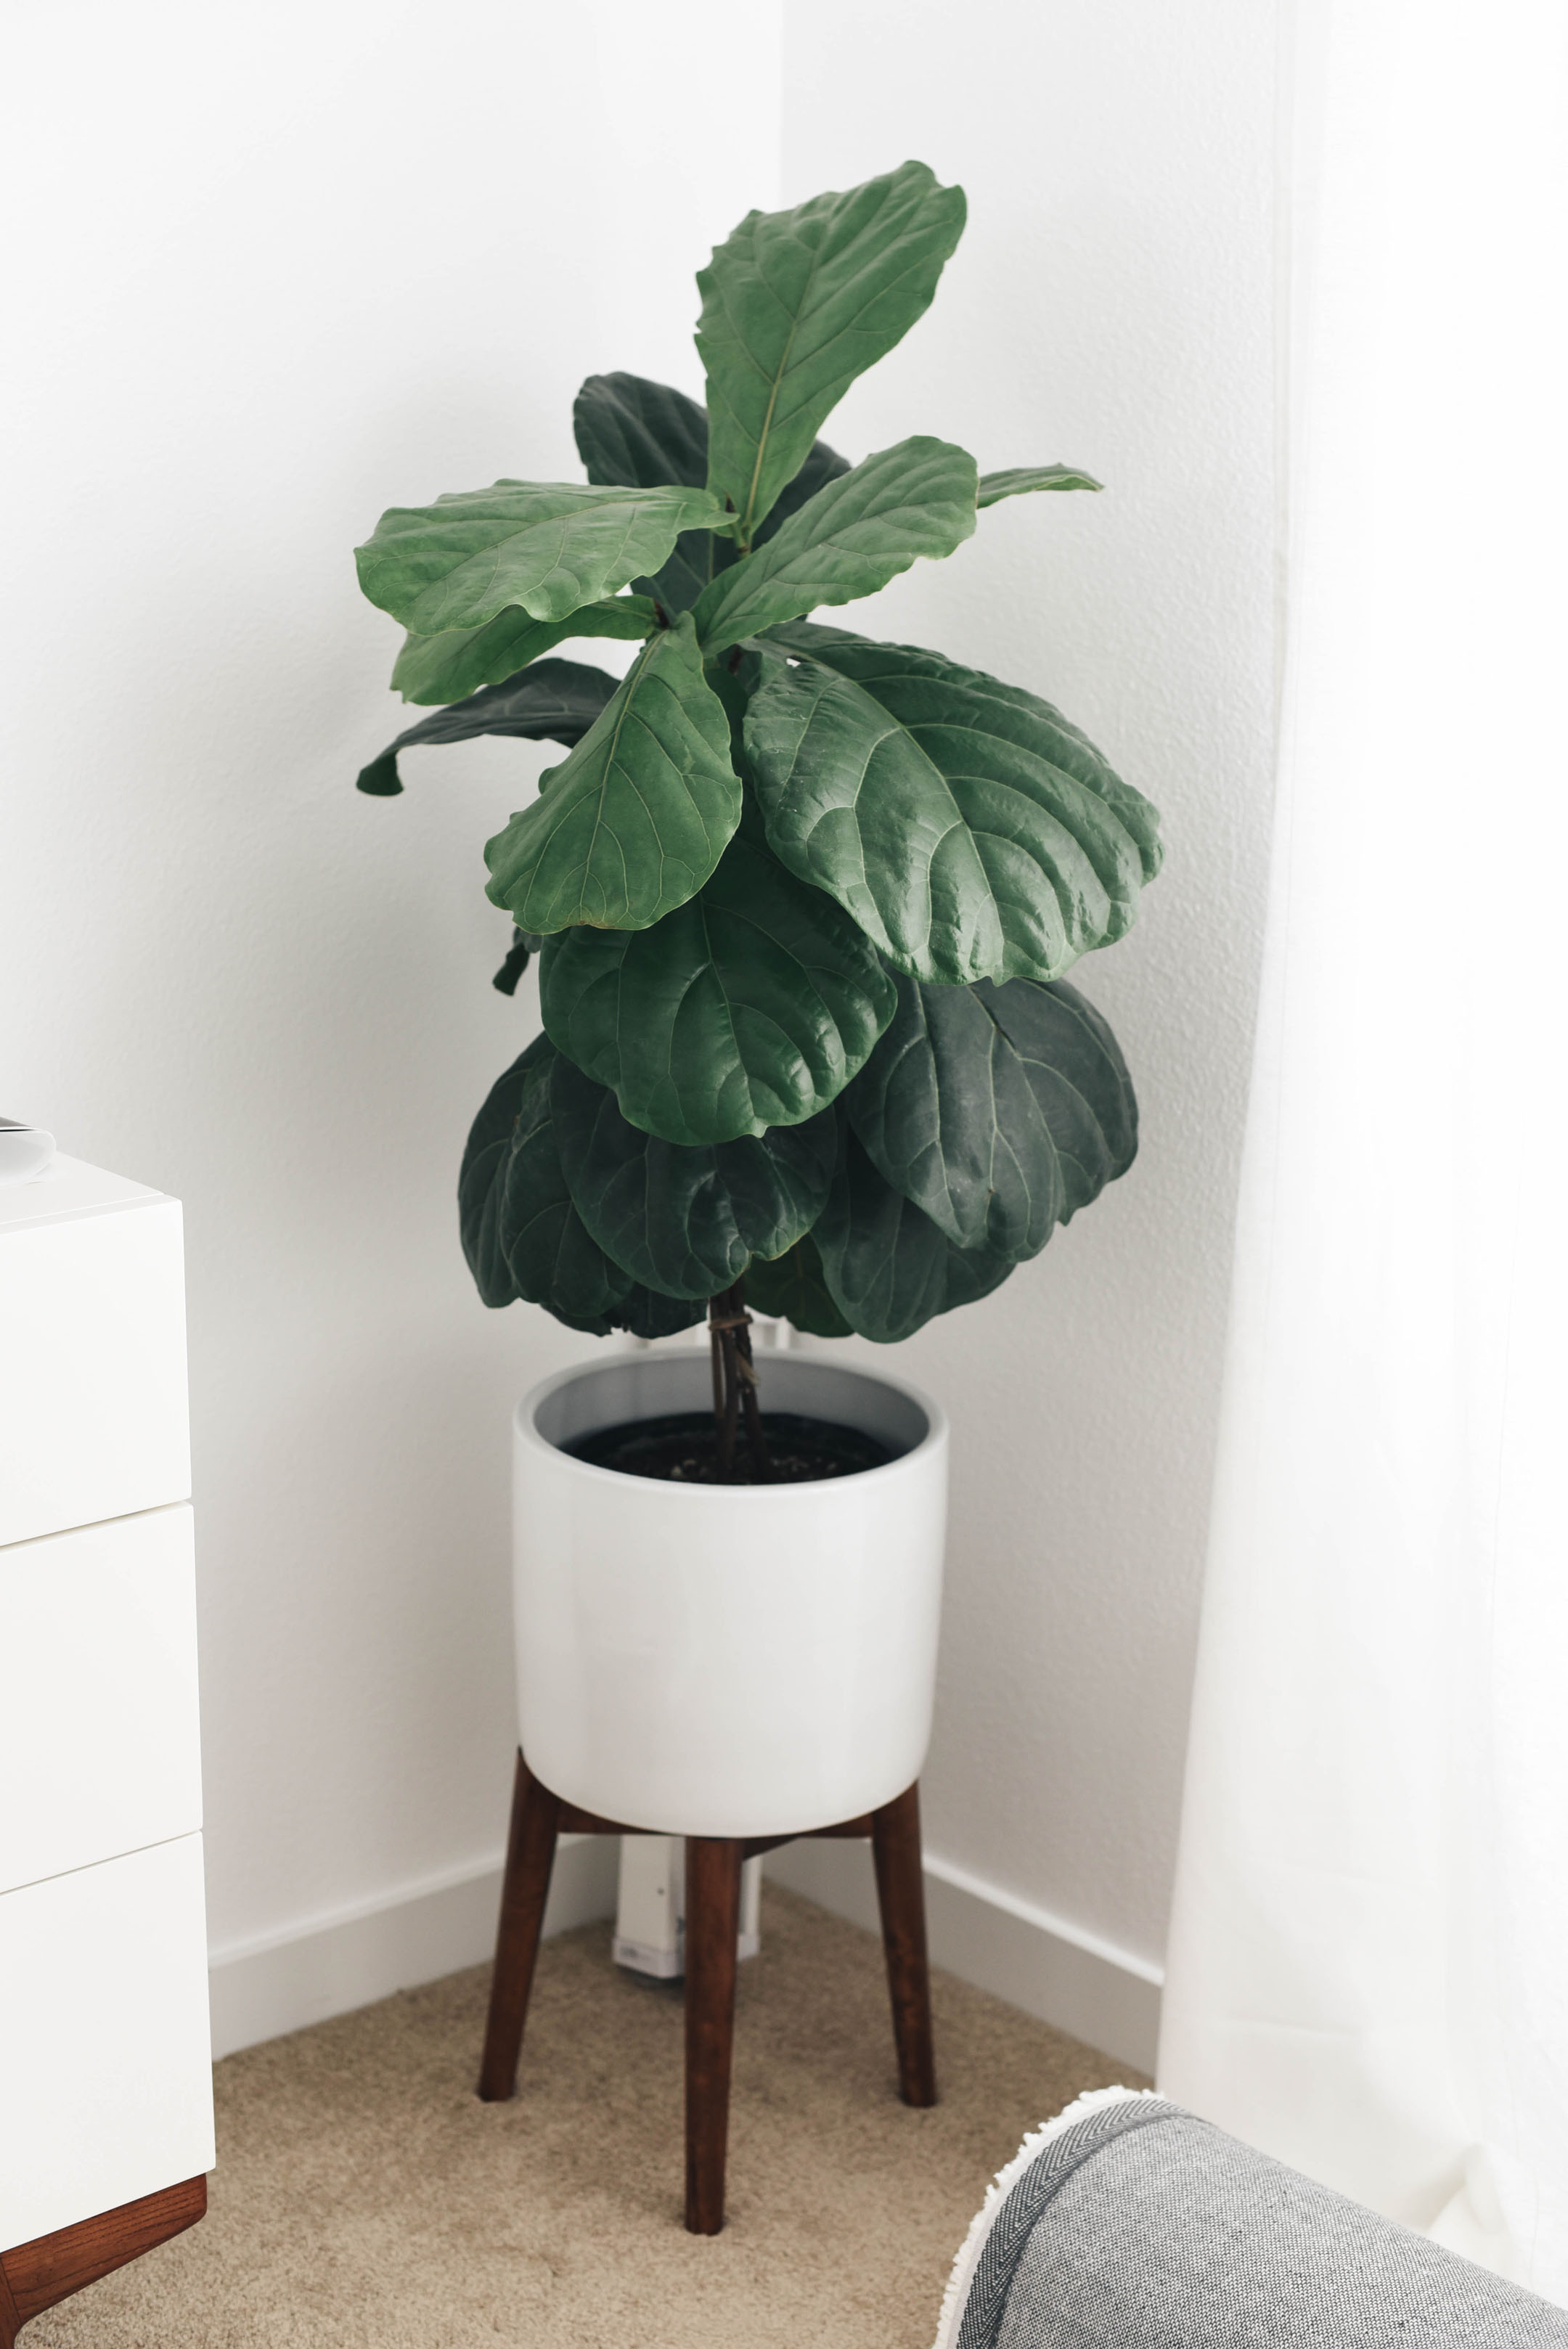 Fiddle leaf fig plant in west elm planter